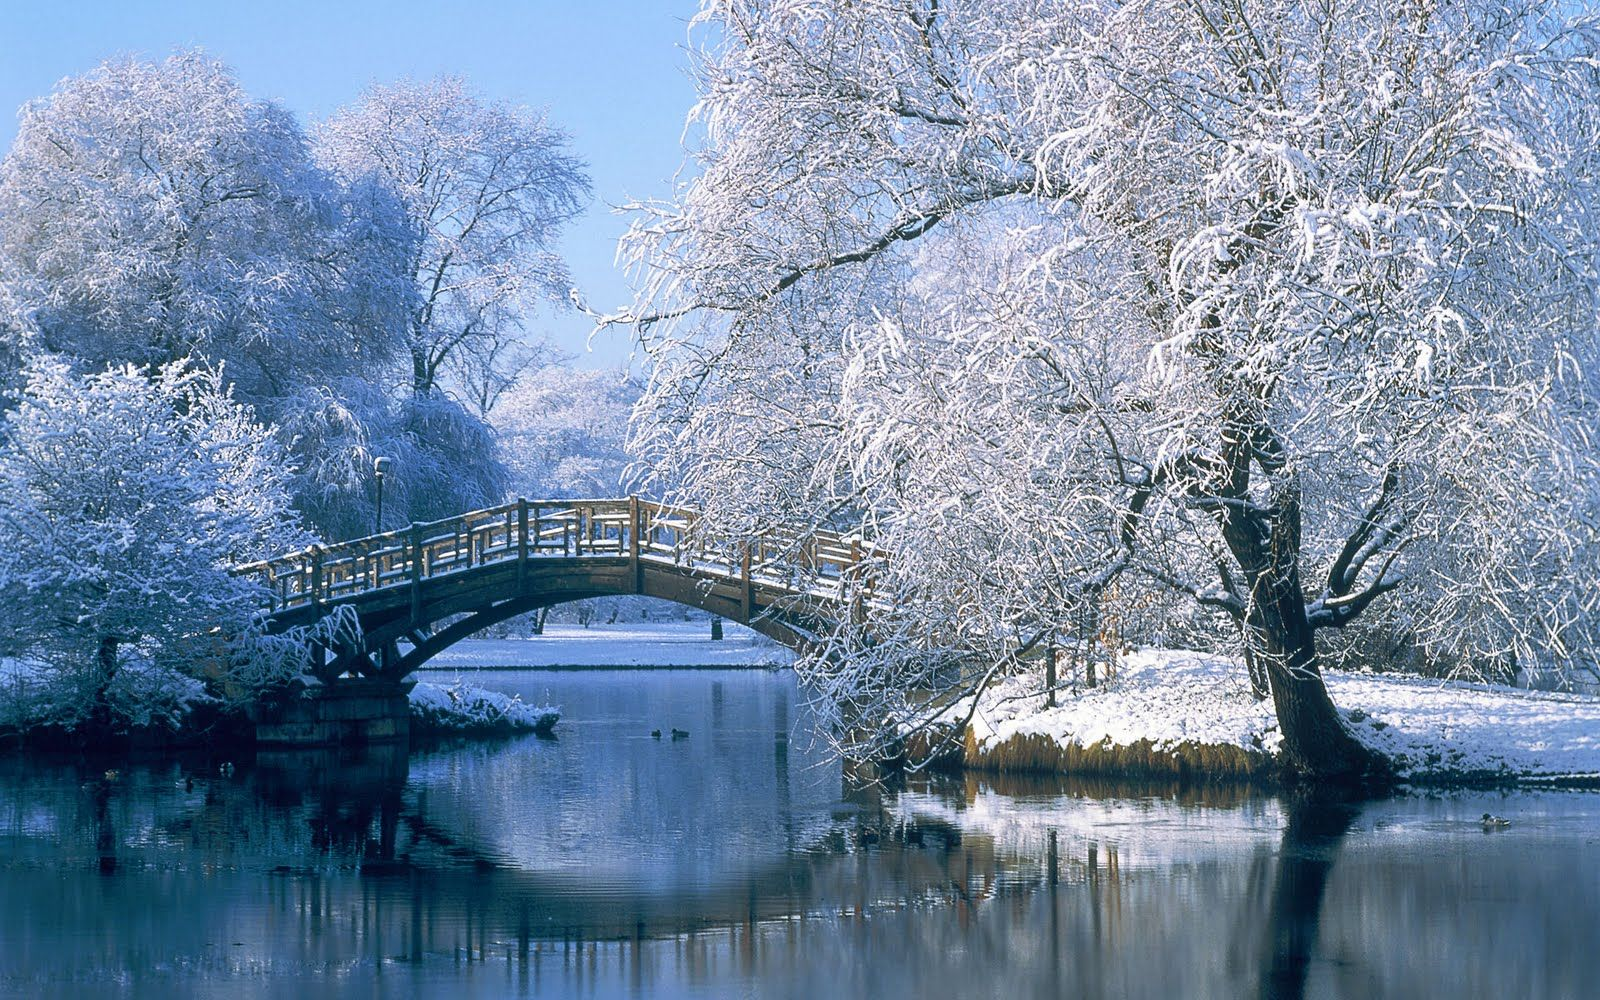 Winter Wonderland Desktop Background Winter scenery